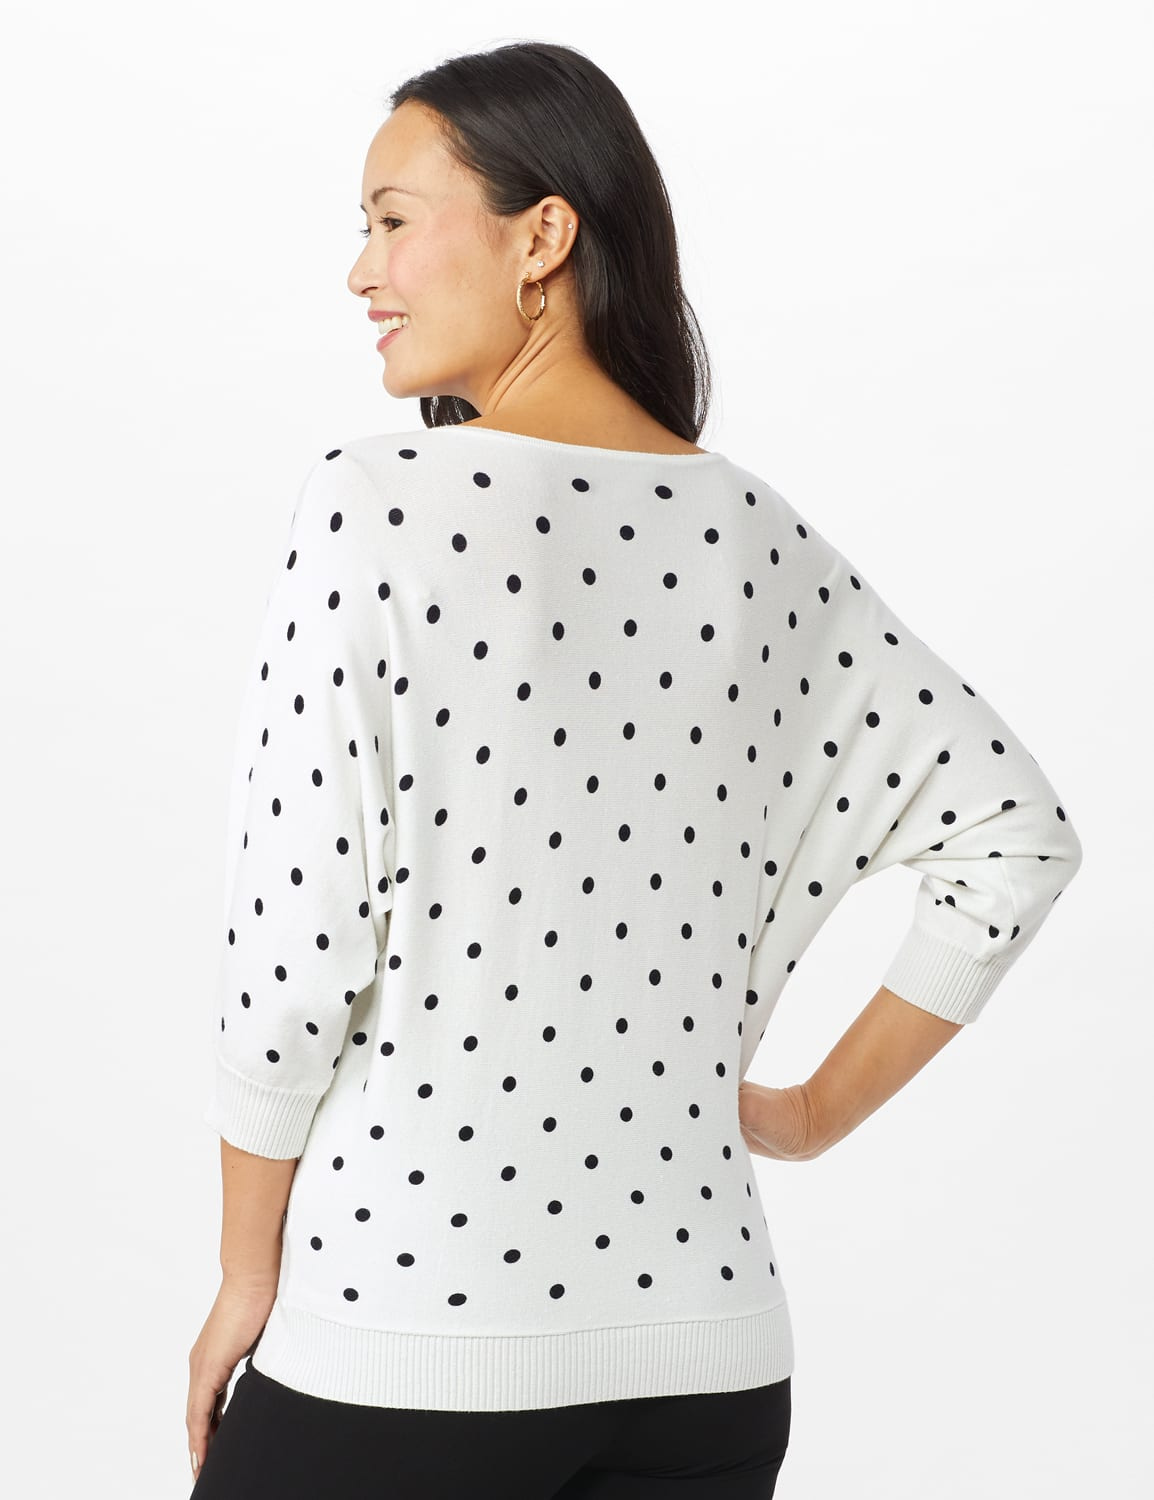 Dot Sweater - White/ Veranda/ Nightlife - Back